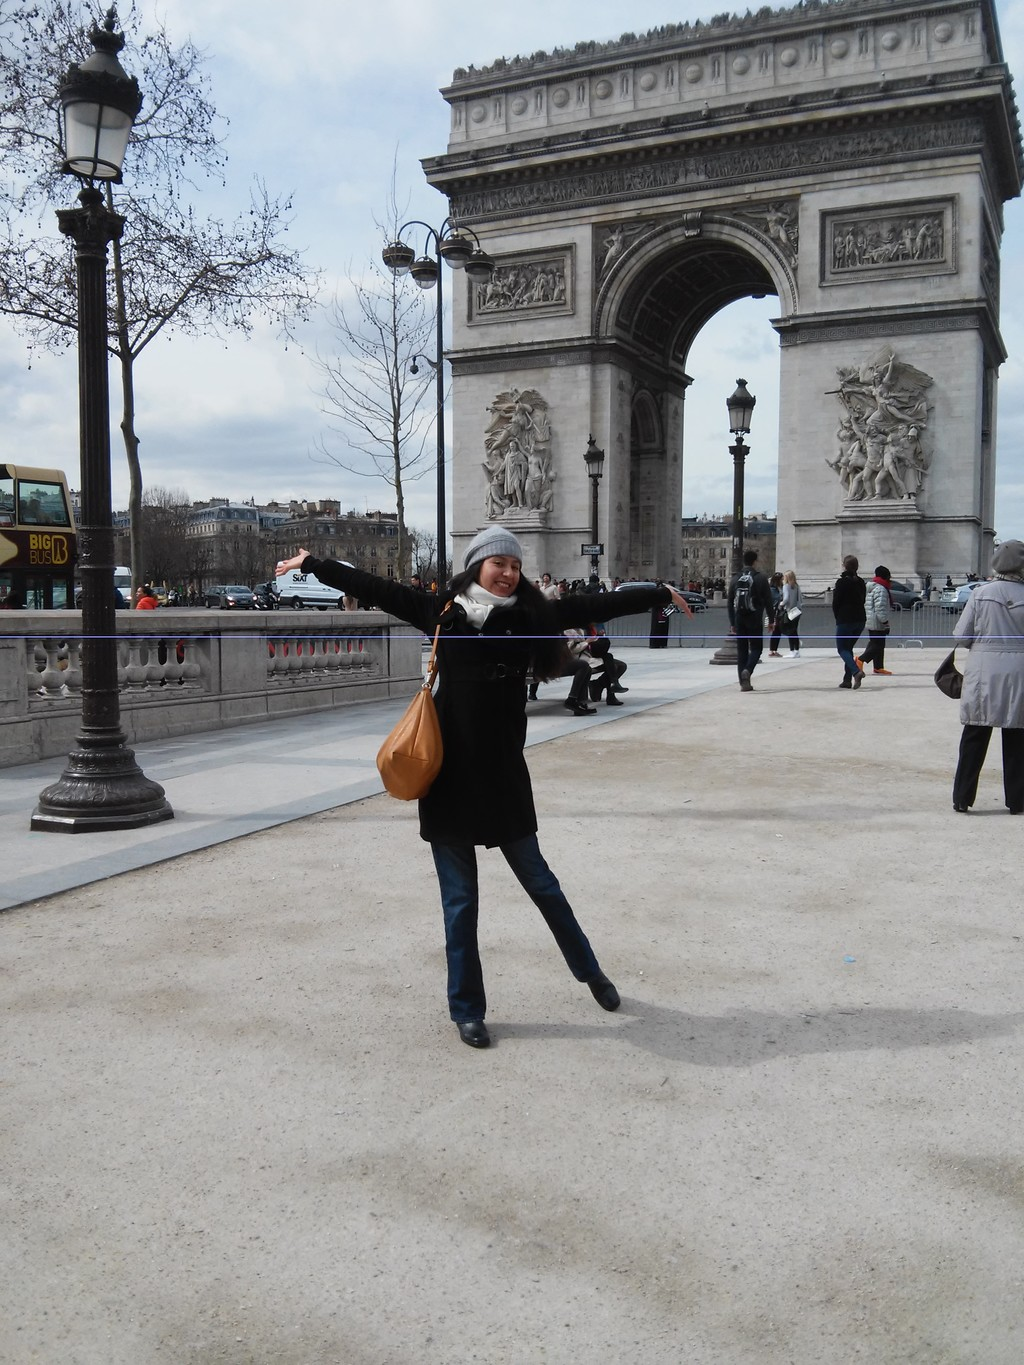 At the top of the Arc de Triomphe: Paris from a different perspective